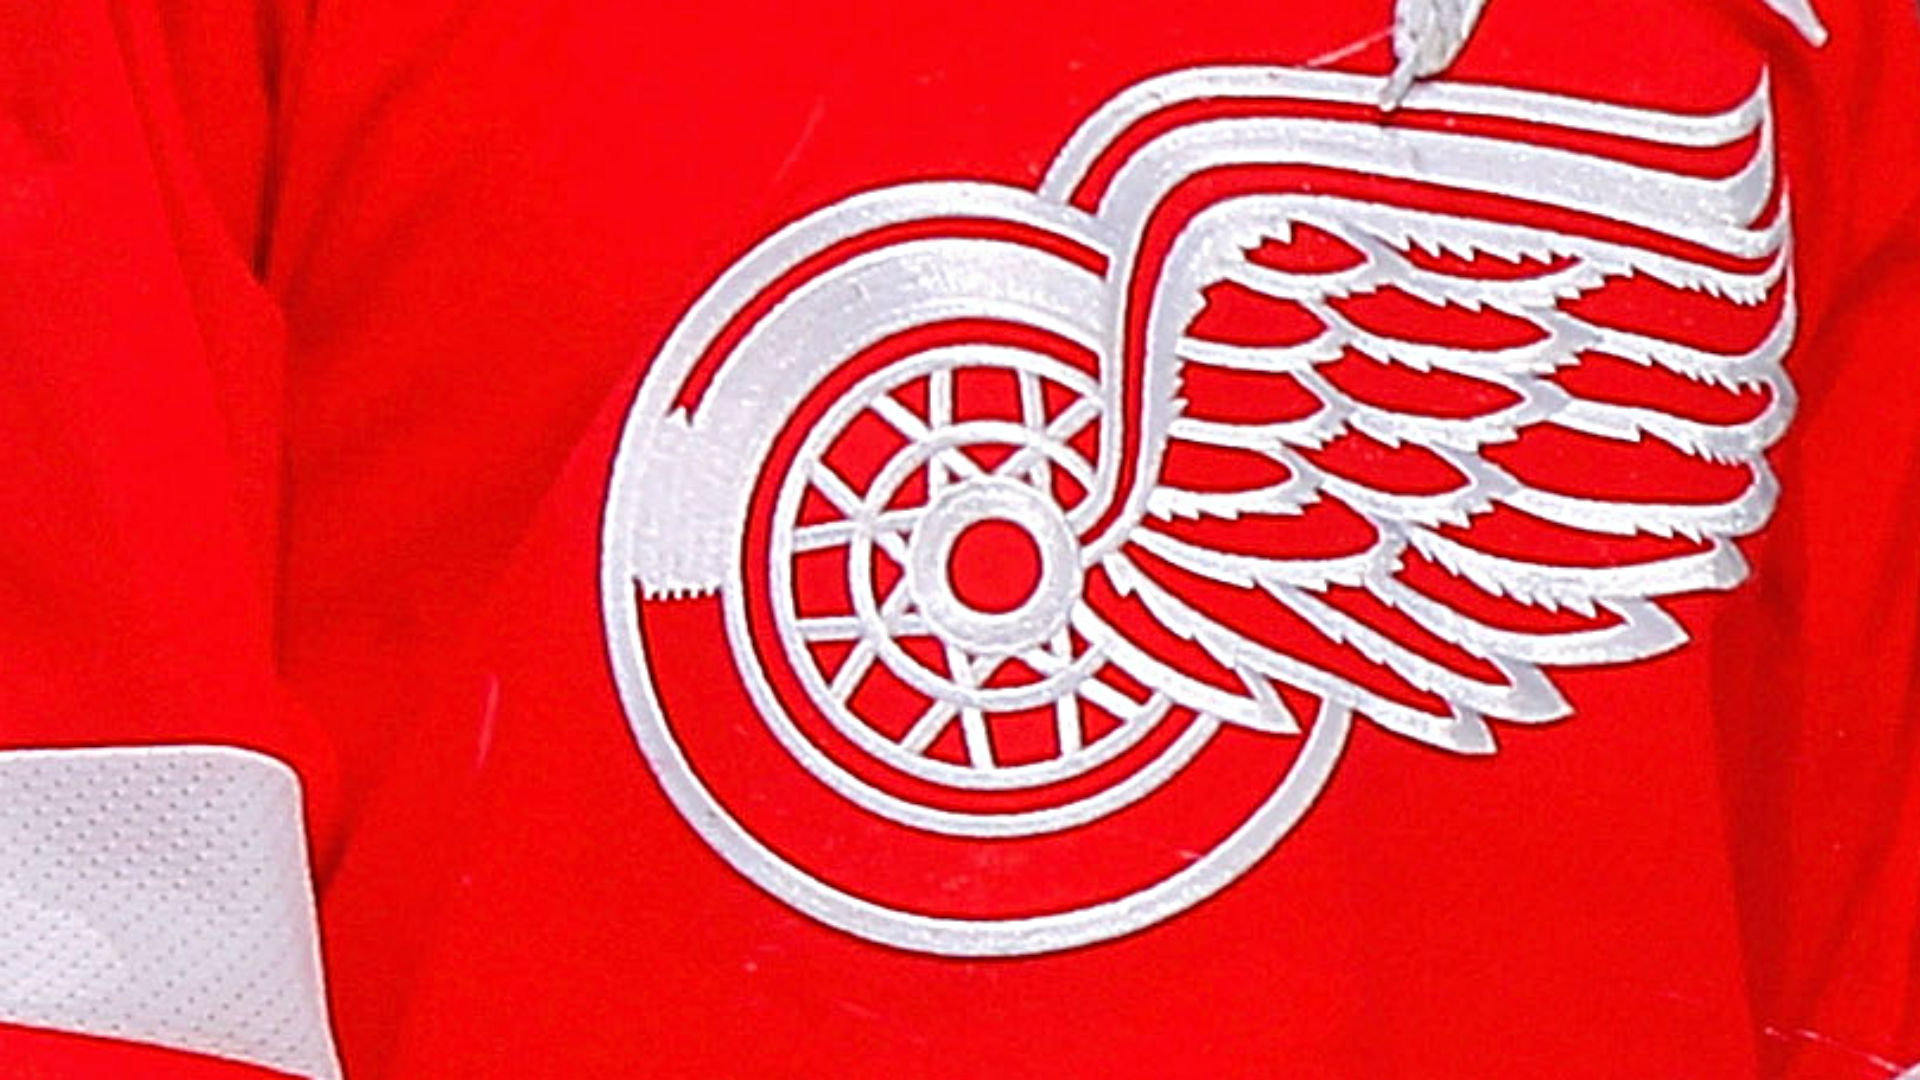 NHL Red Wings Considering Legal Action After Team Logo Used At White Nationalist Rally